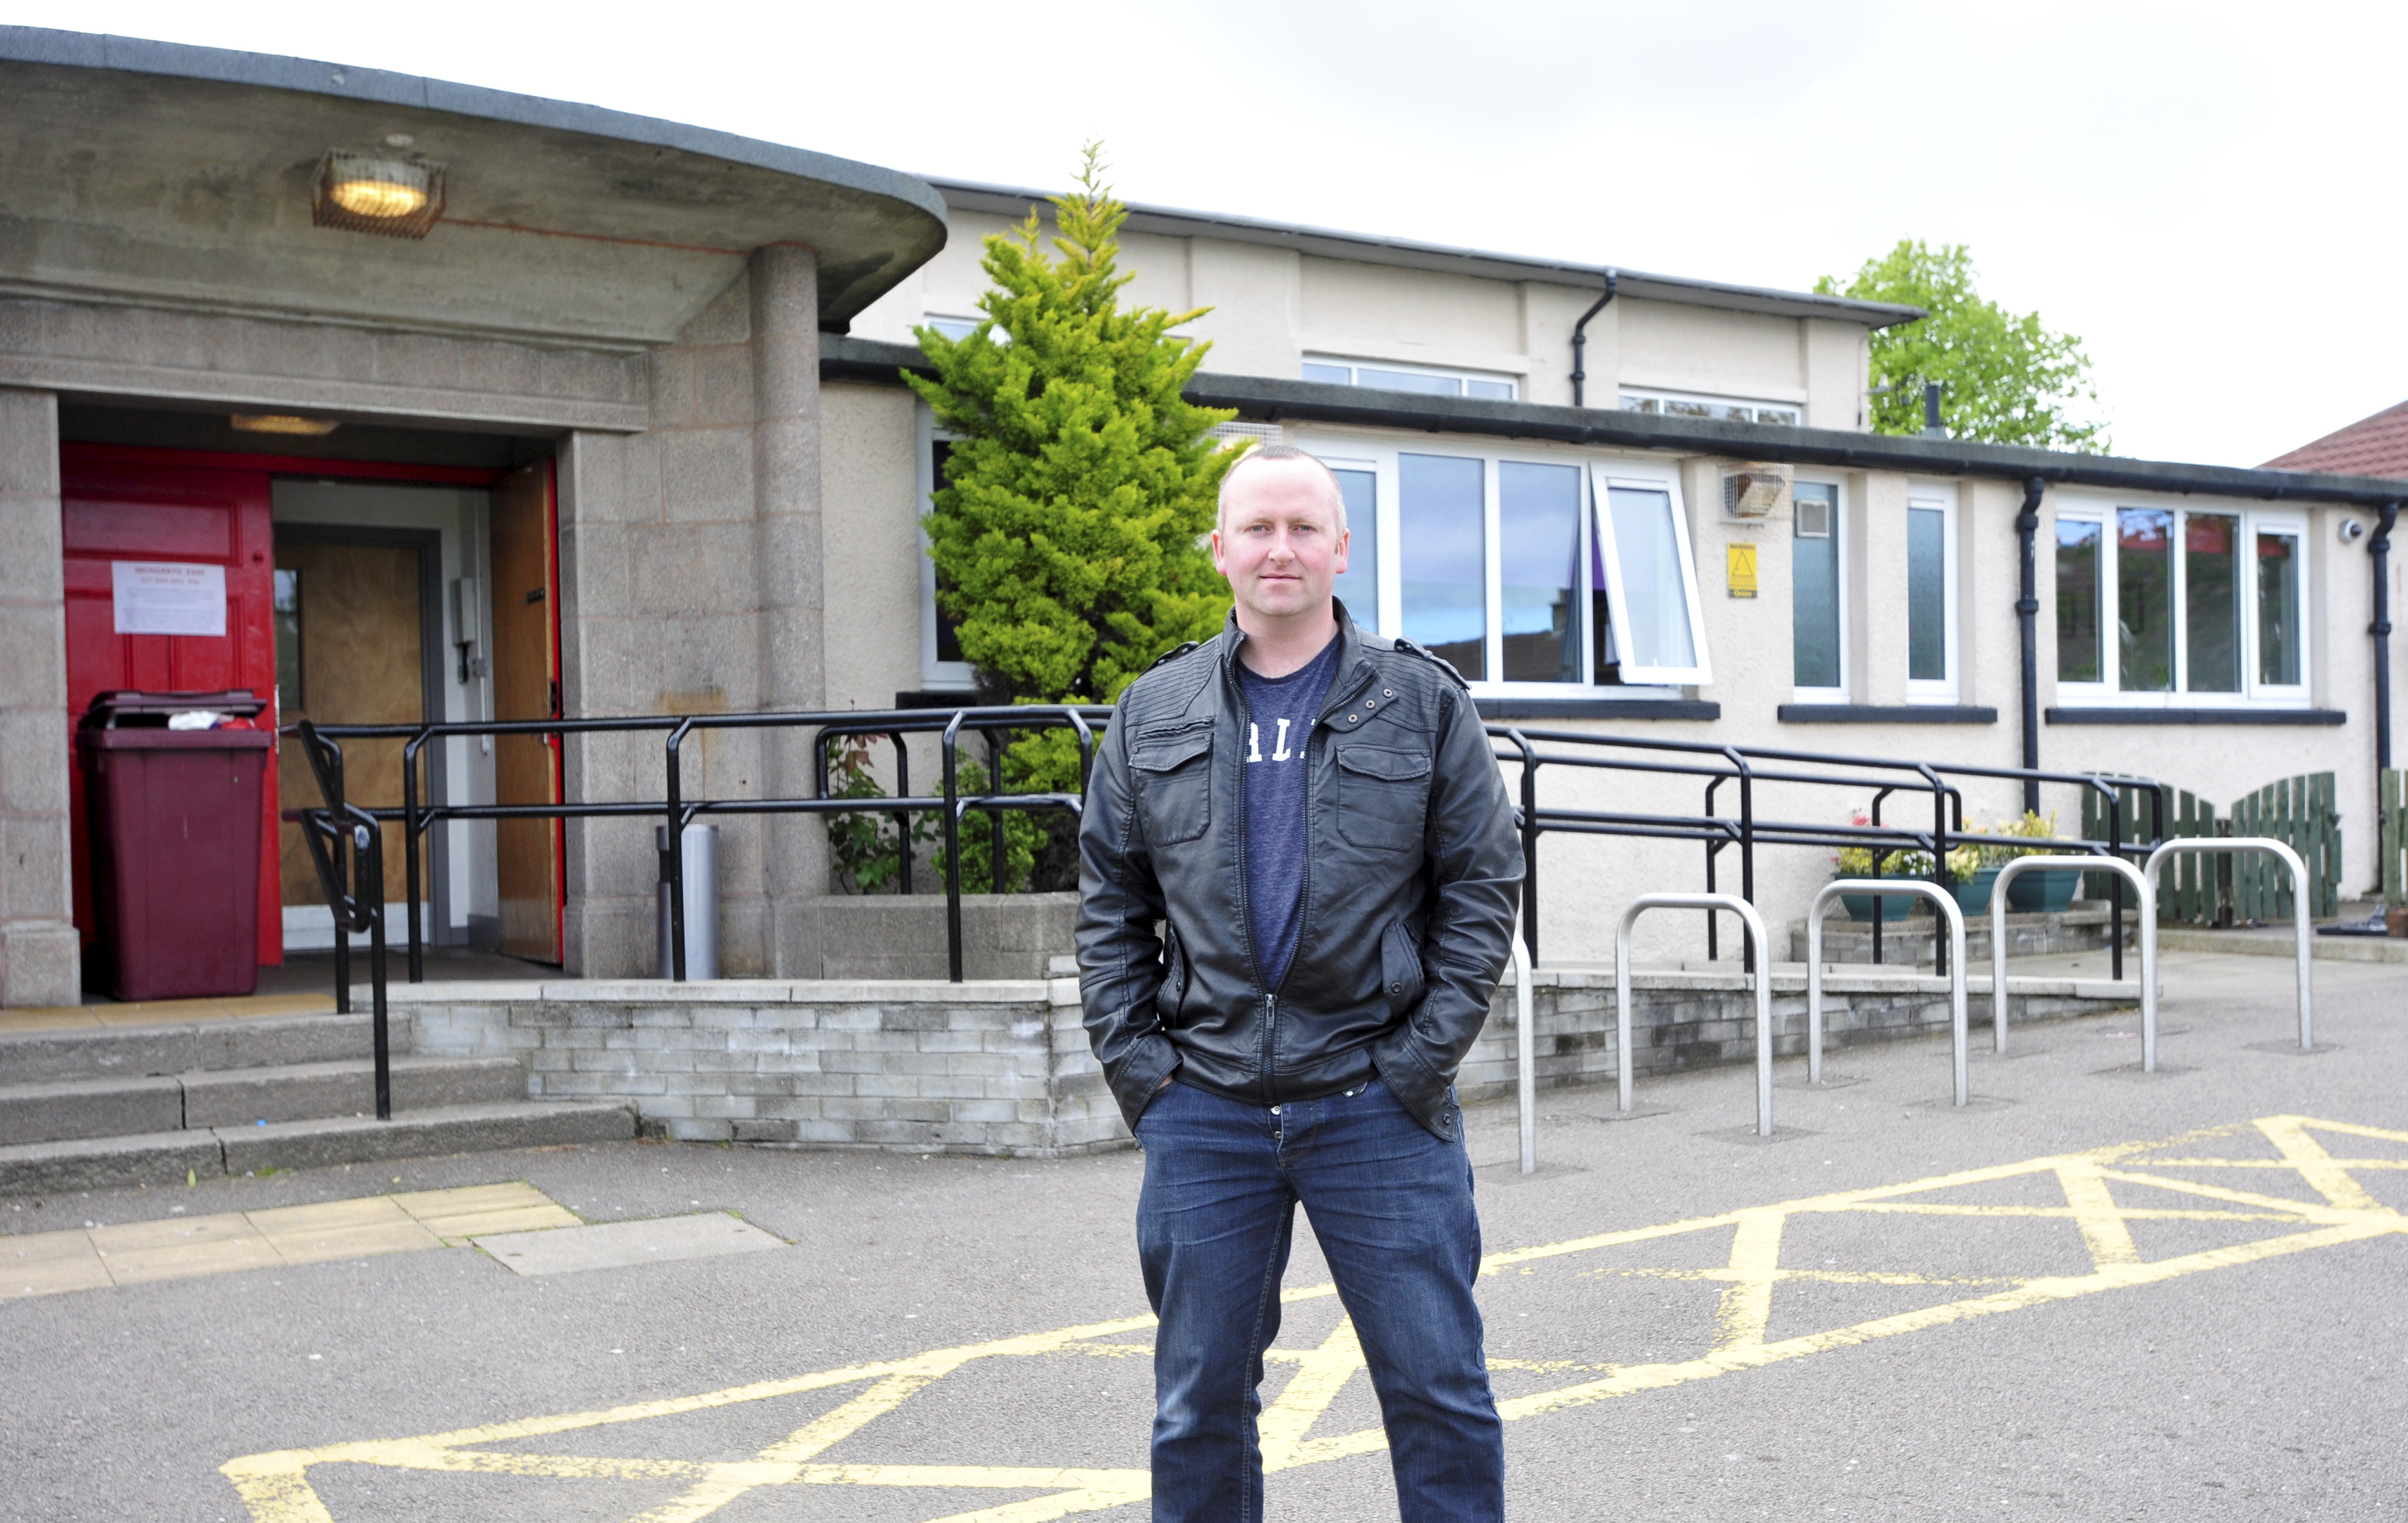 Paul O'Connor is frustrated with students using valuable parking spaces.